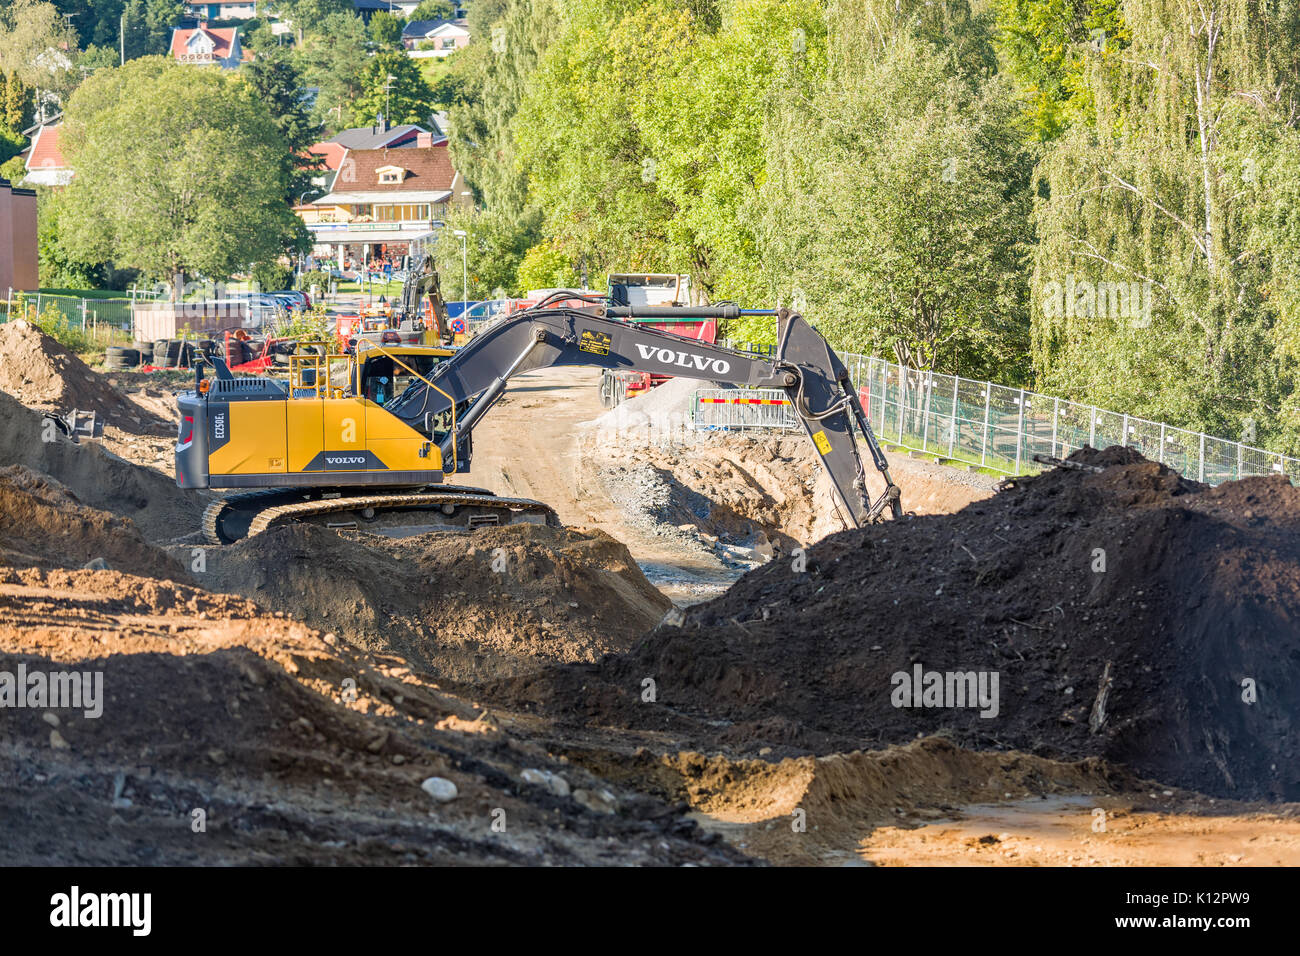 Heavy duty Volvo EC250EL excavator digging and moving piles of topsoil at building site ahead of construction  Model Release: No.  Property Release: No. - Stock Image